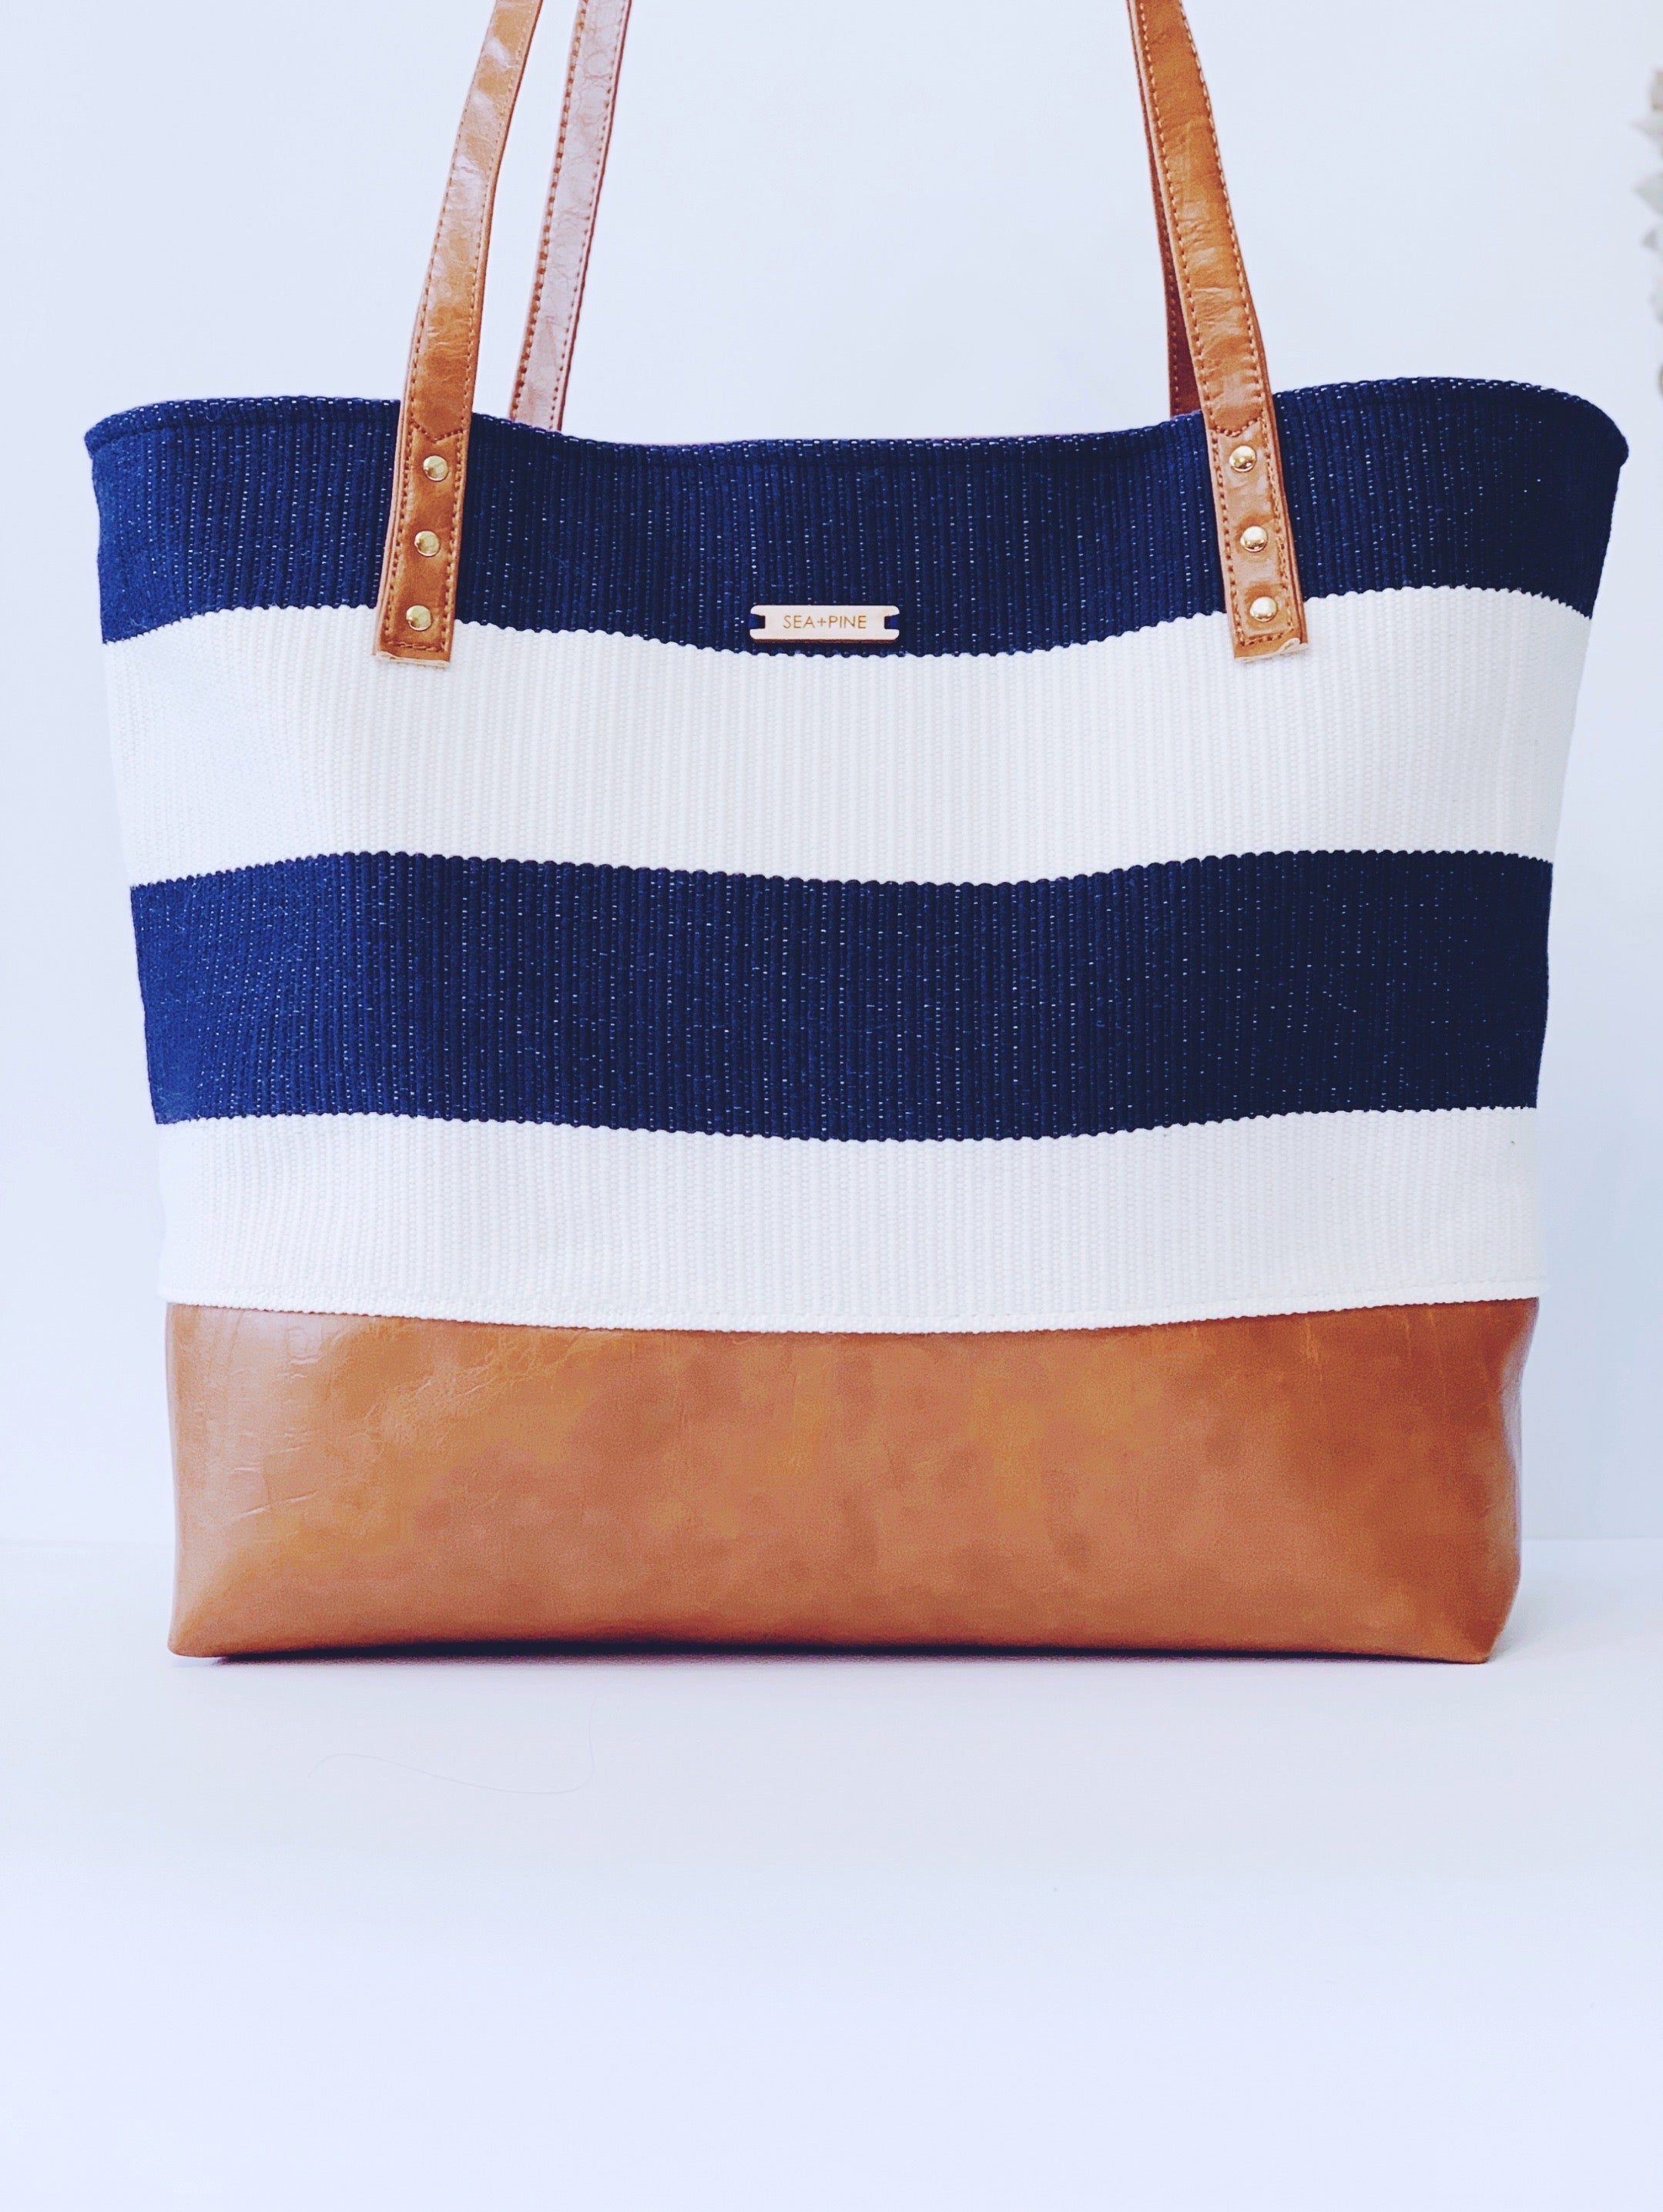 Coastline Signature Tote, Large